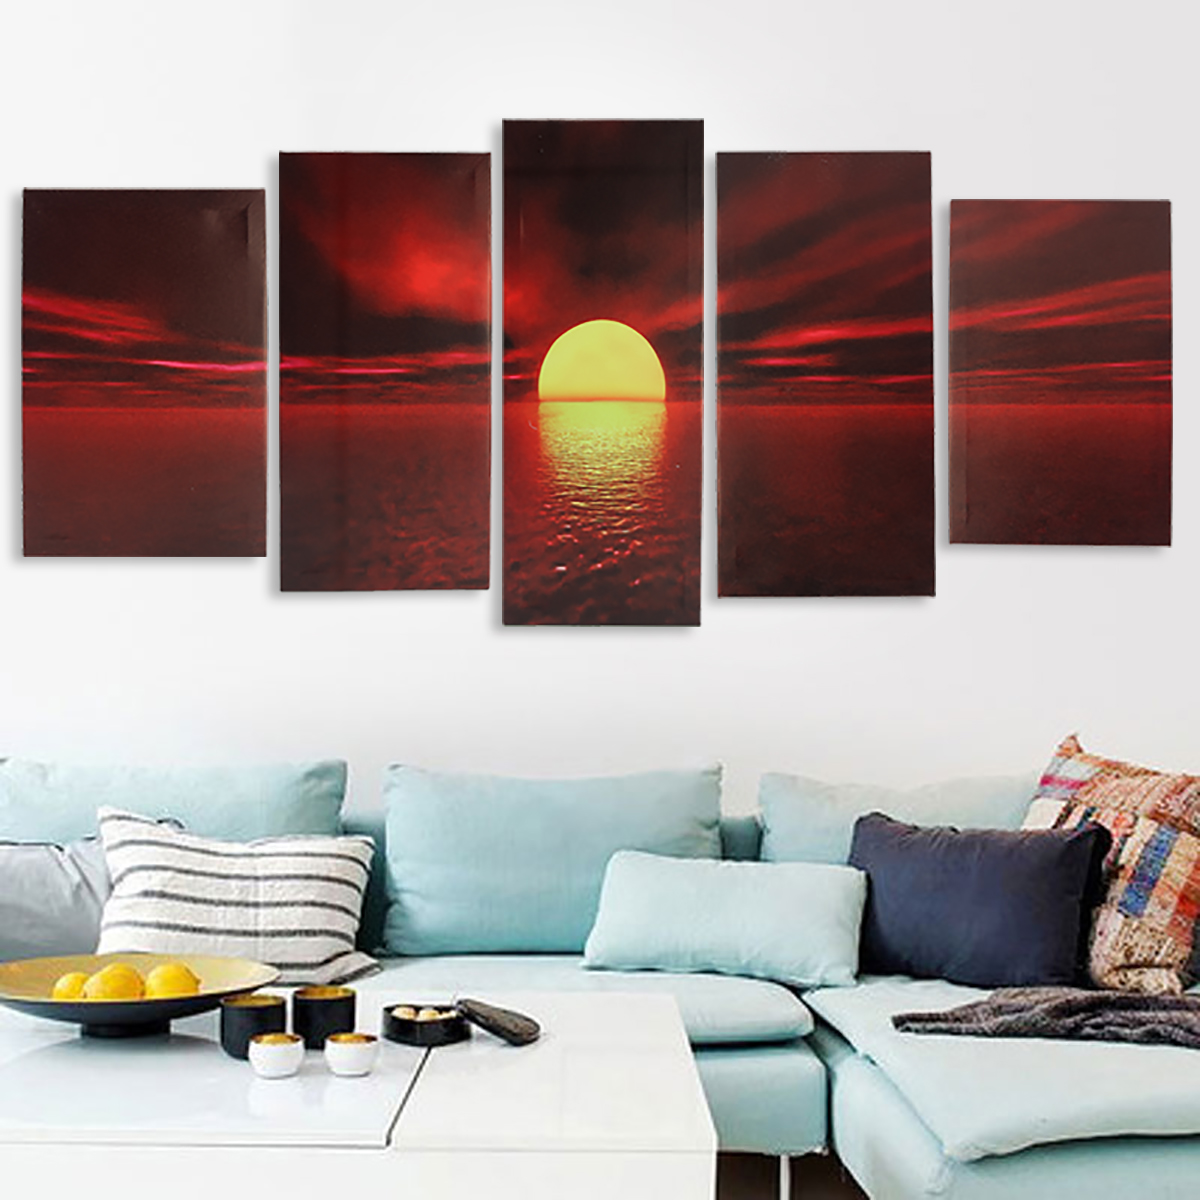 Asewin Sunrise Red Sun Modern 5 Piece Framed Wrapped Landscape Canvas Prints Artwork Ocean Sea Beach Pictures Paintings on Canvas Wall Art for Living Room Bedroom Home Decor